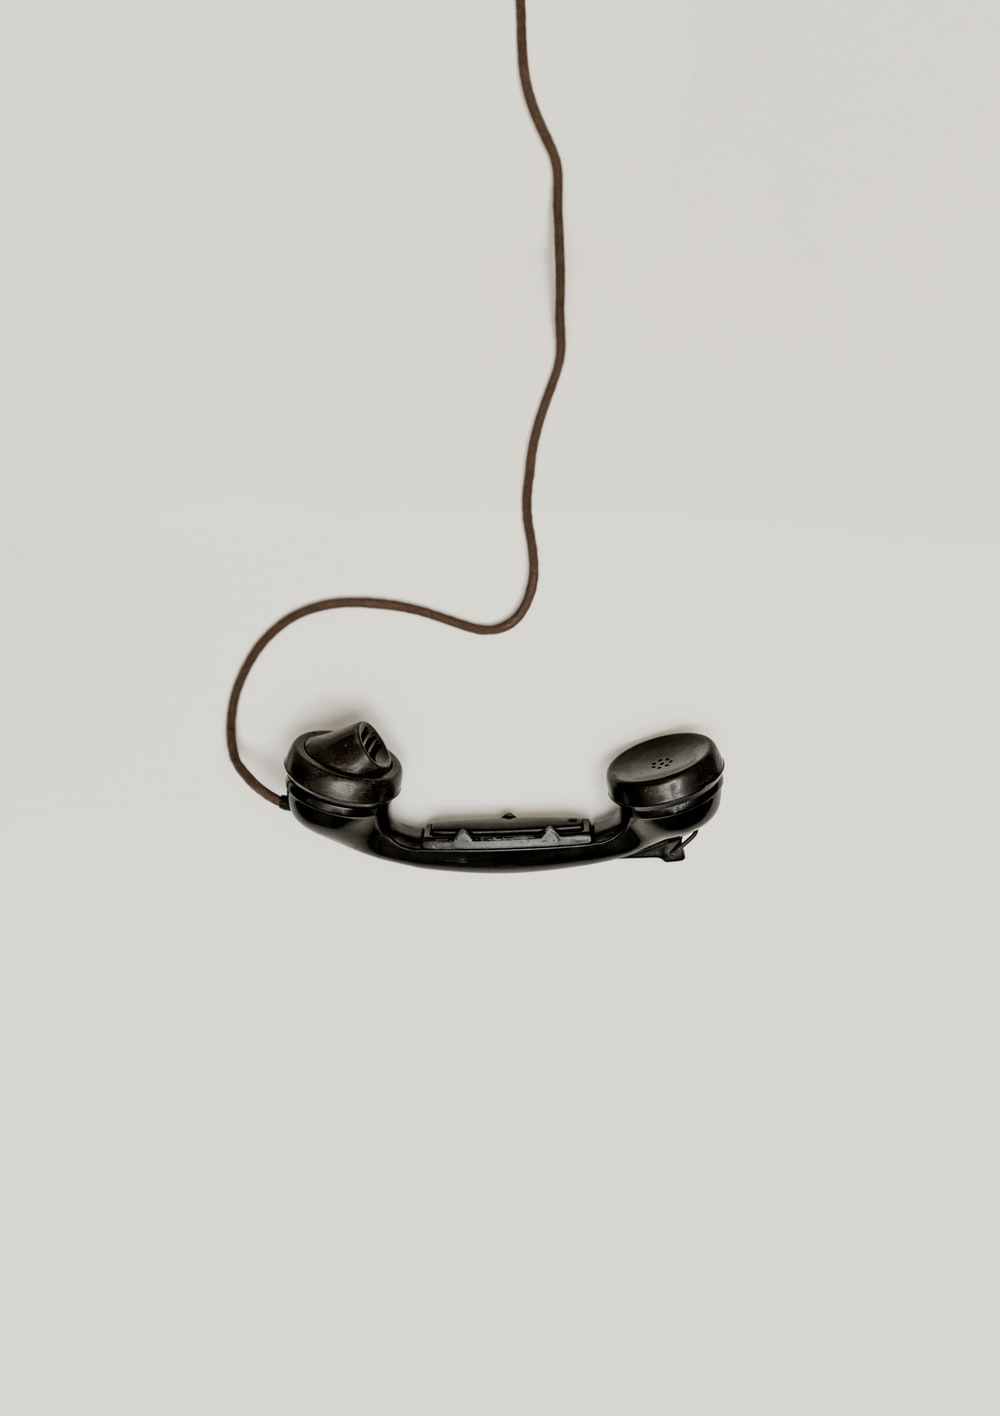 black corded telephone